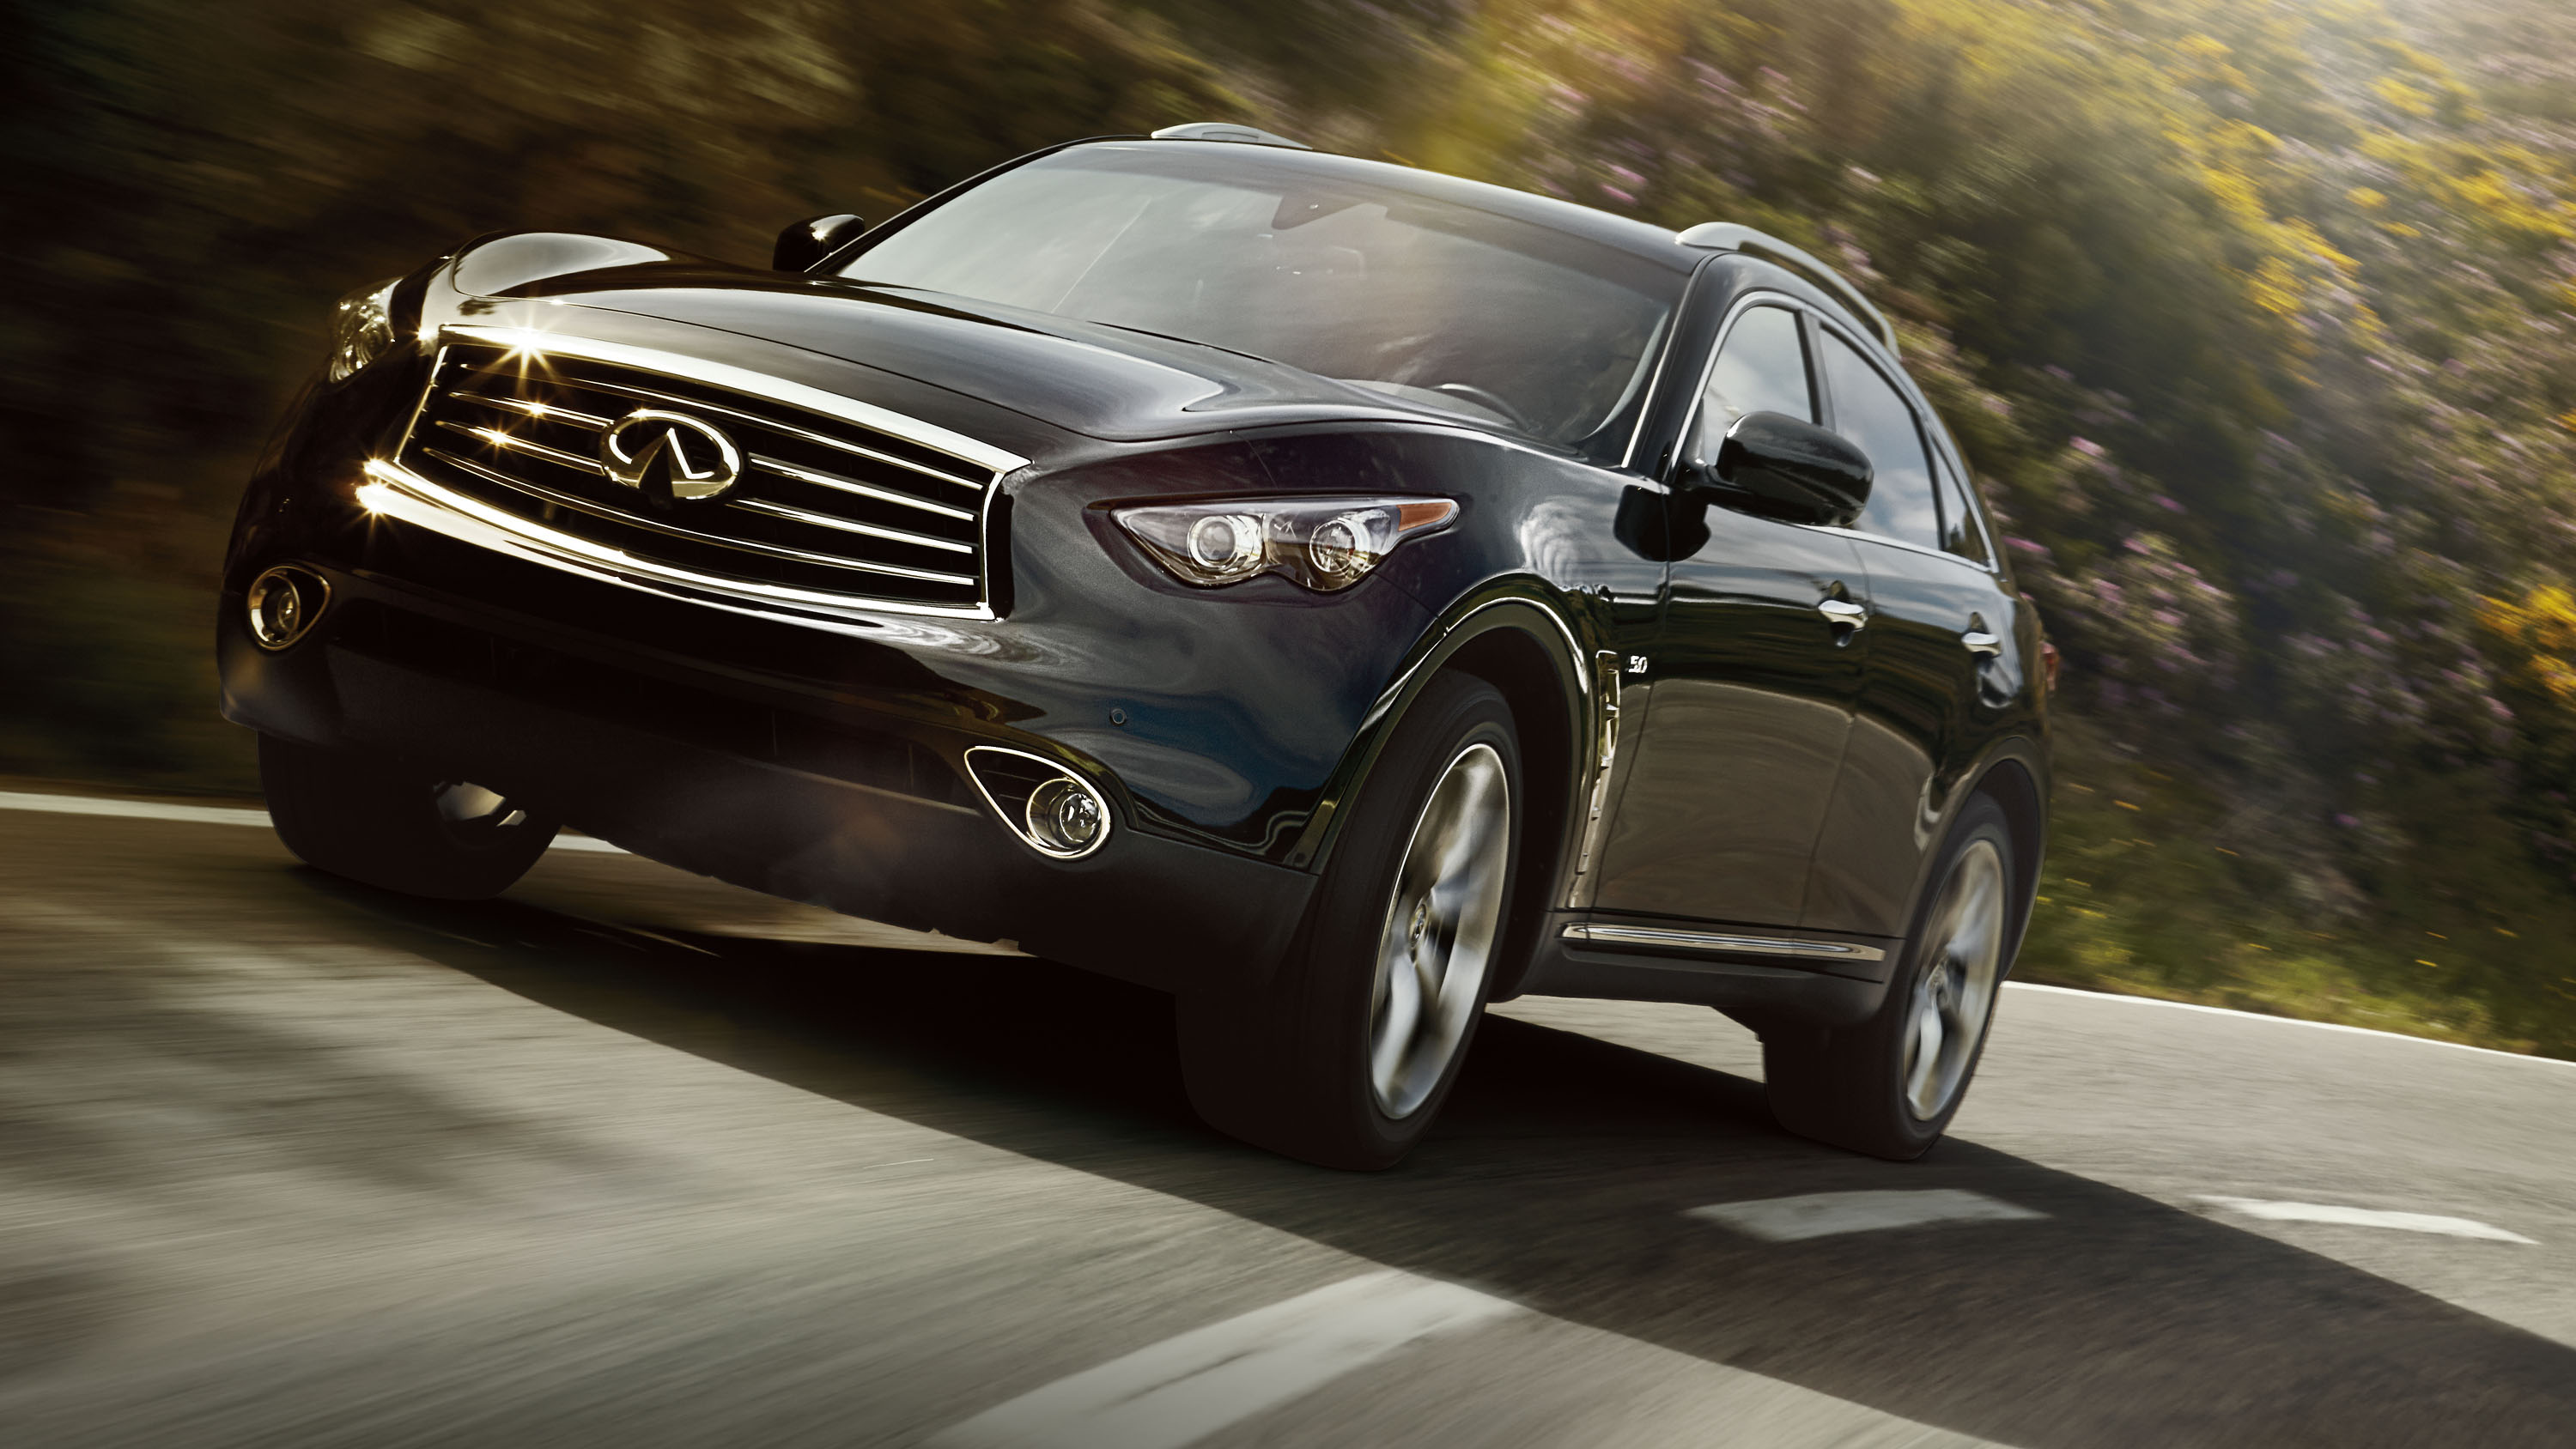 infiniti qx70 specs 2013 2014 2015 2016 2017 autoevolution. Black Bedroom Furniture Sets. Home Design Ideas